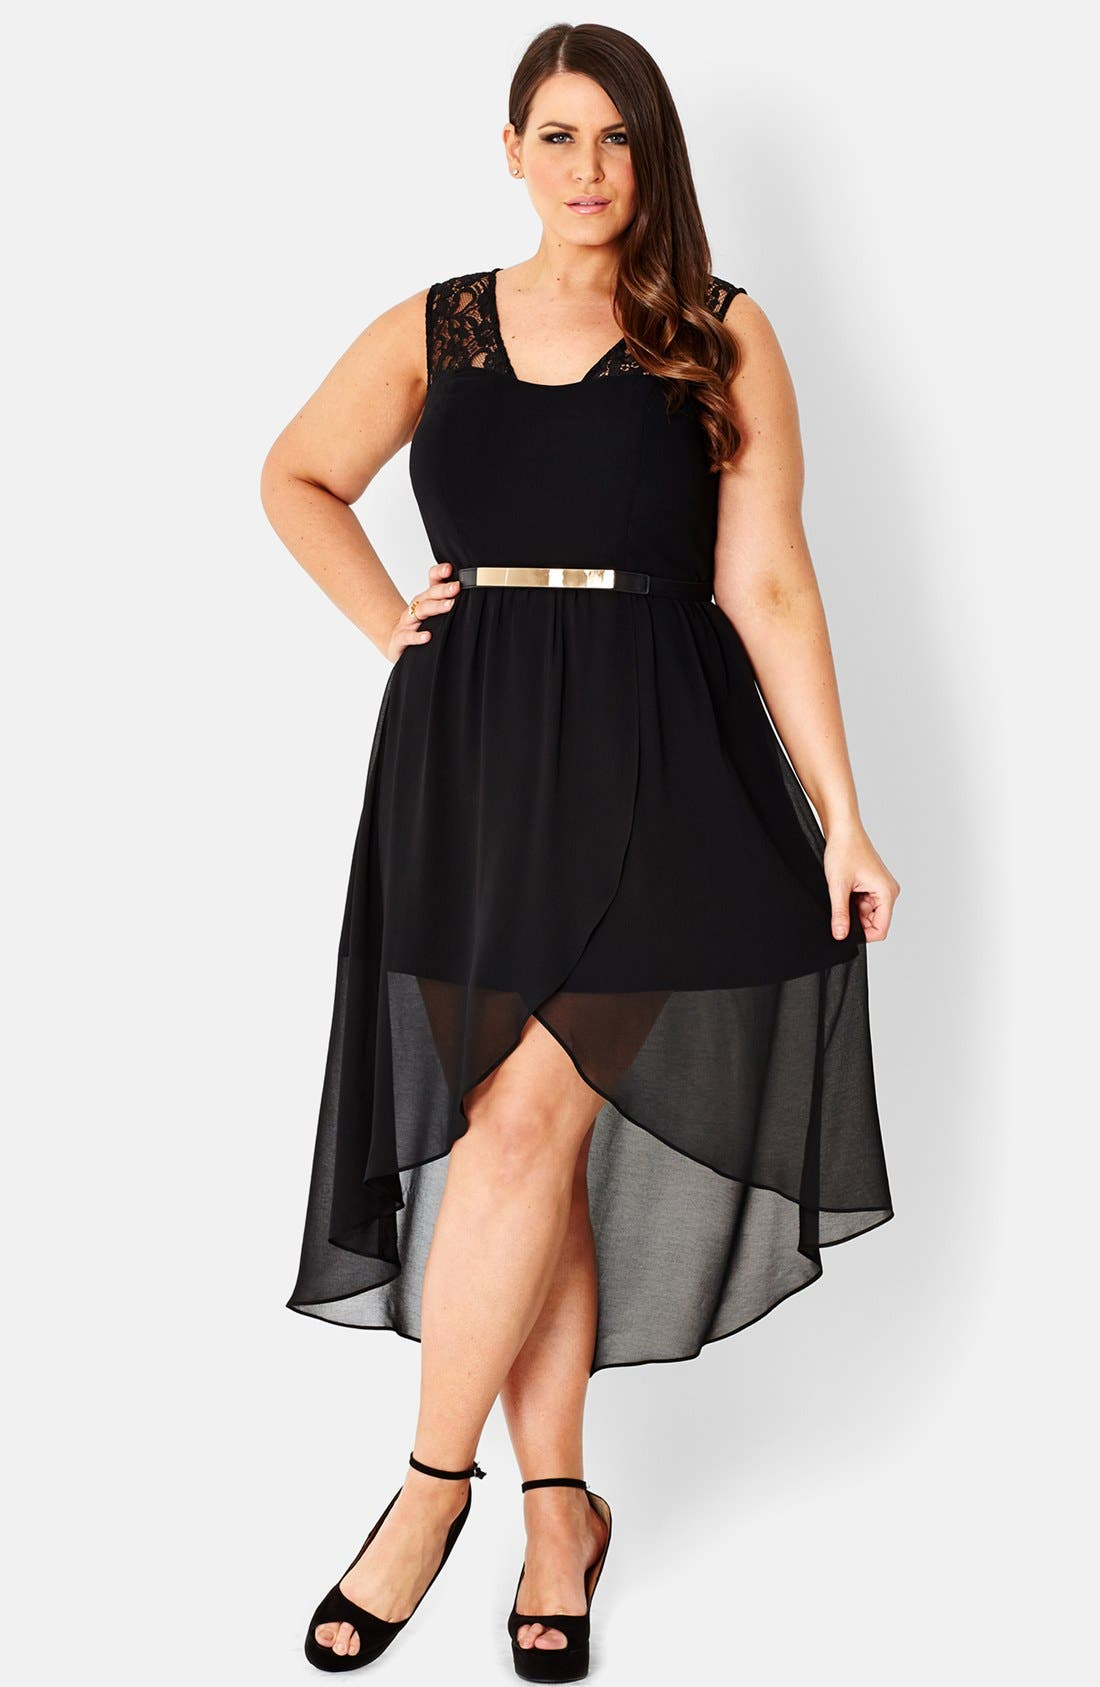 Alternate Image 1 Selected - City Chic Lace Trim High/Low Chiffon Overlay Dress (Plus Size)